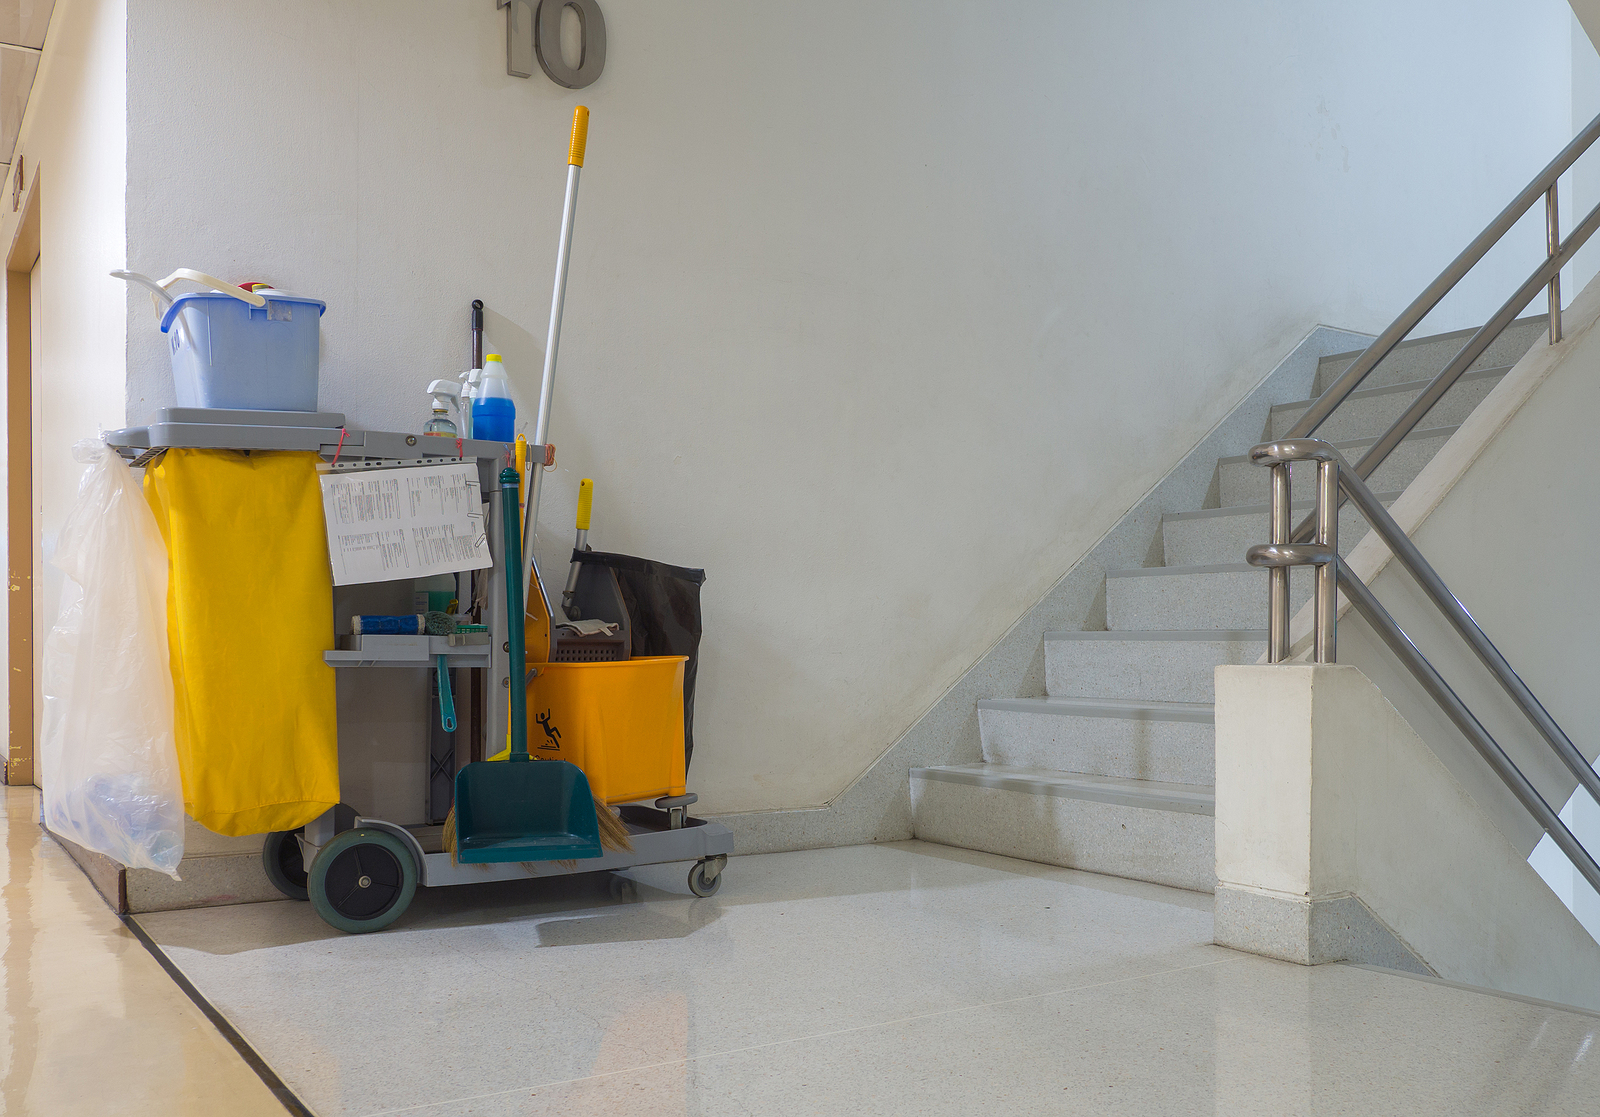 How to Hire a Janitorial Service